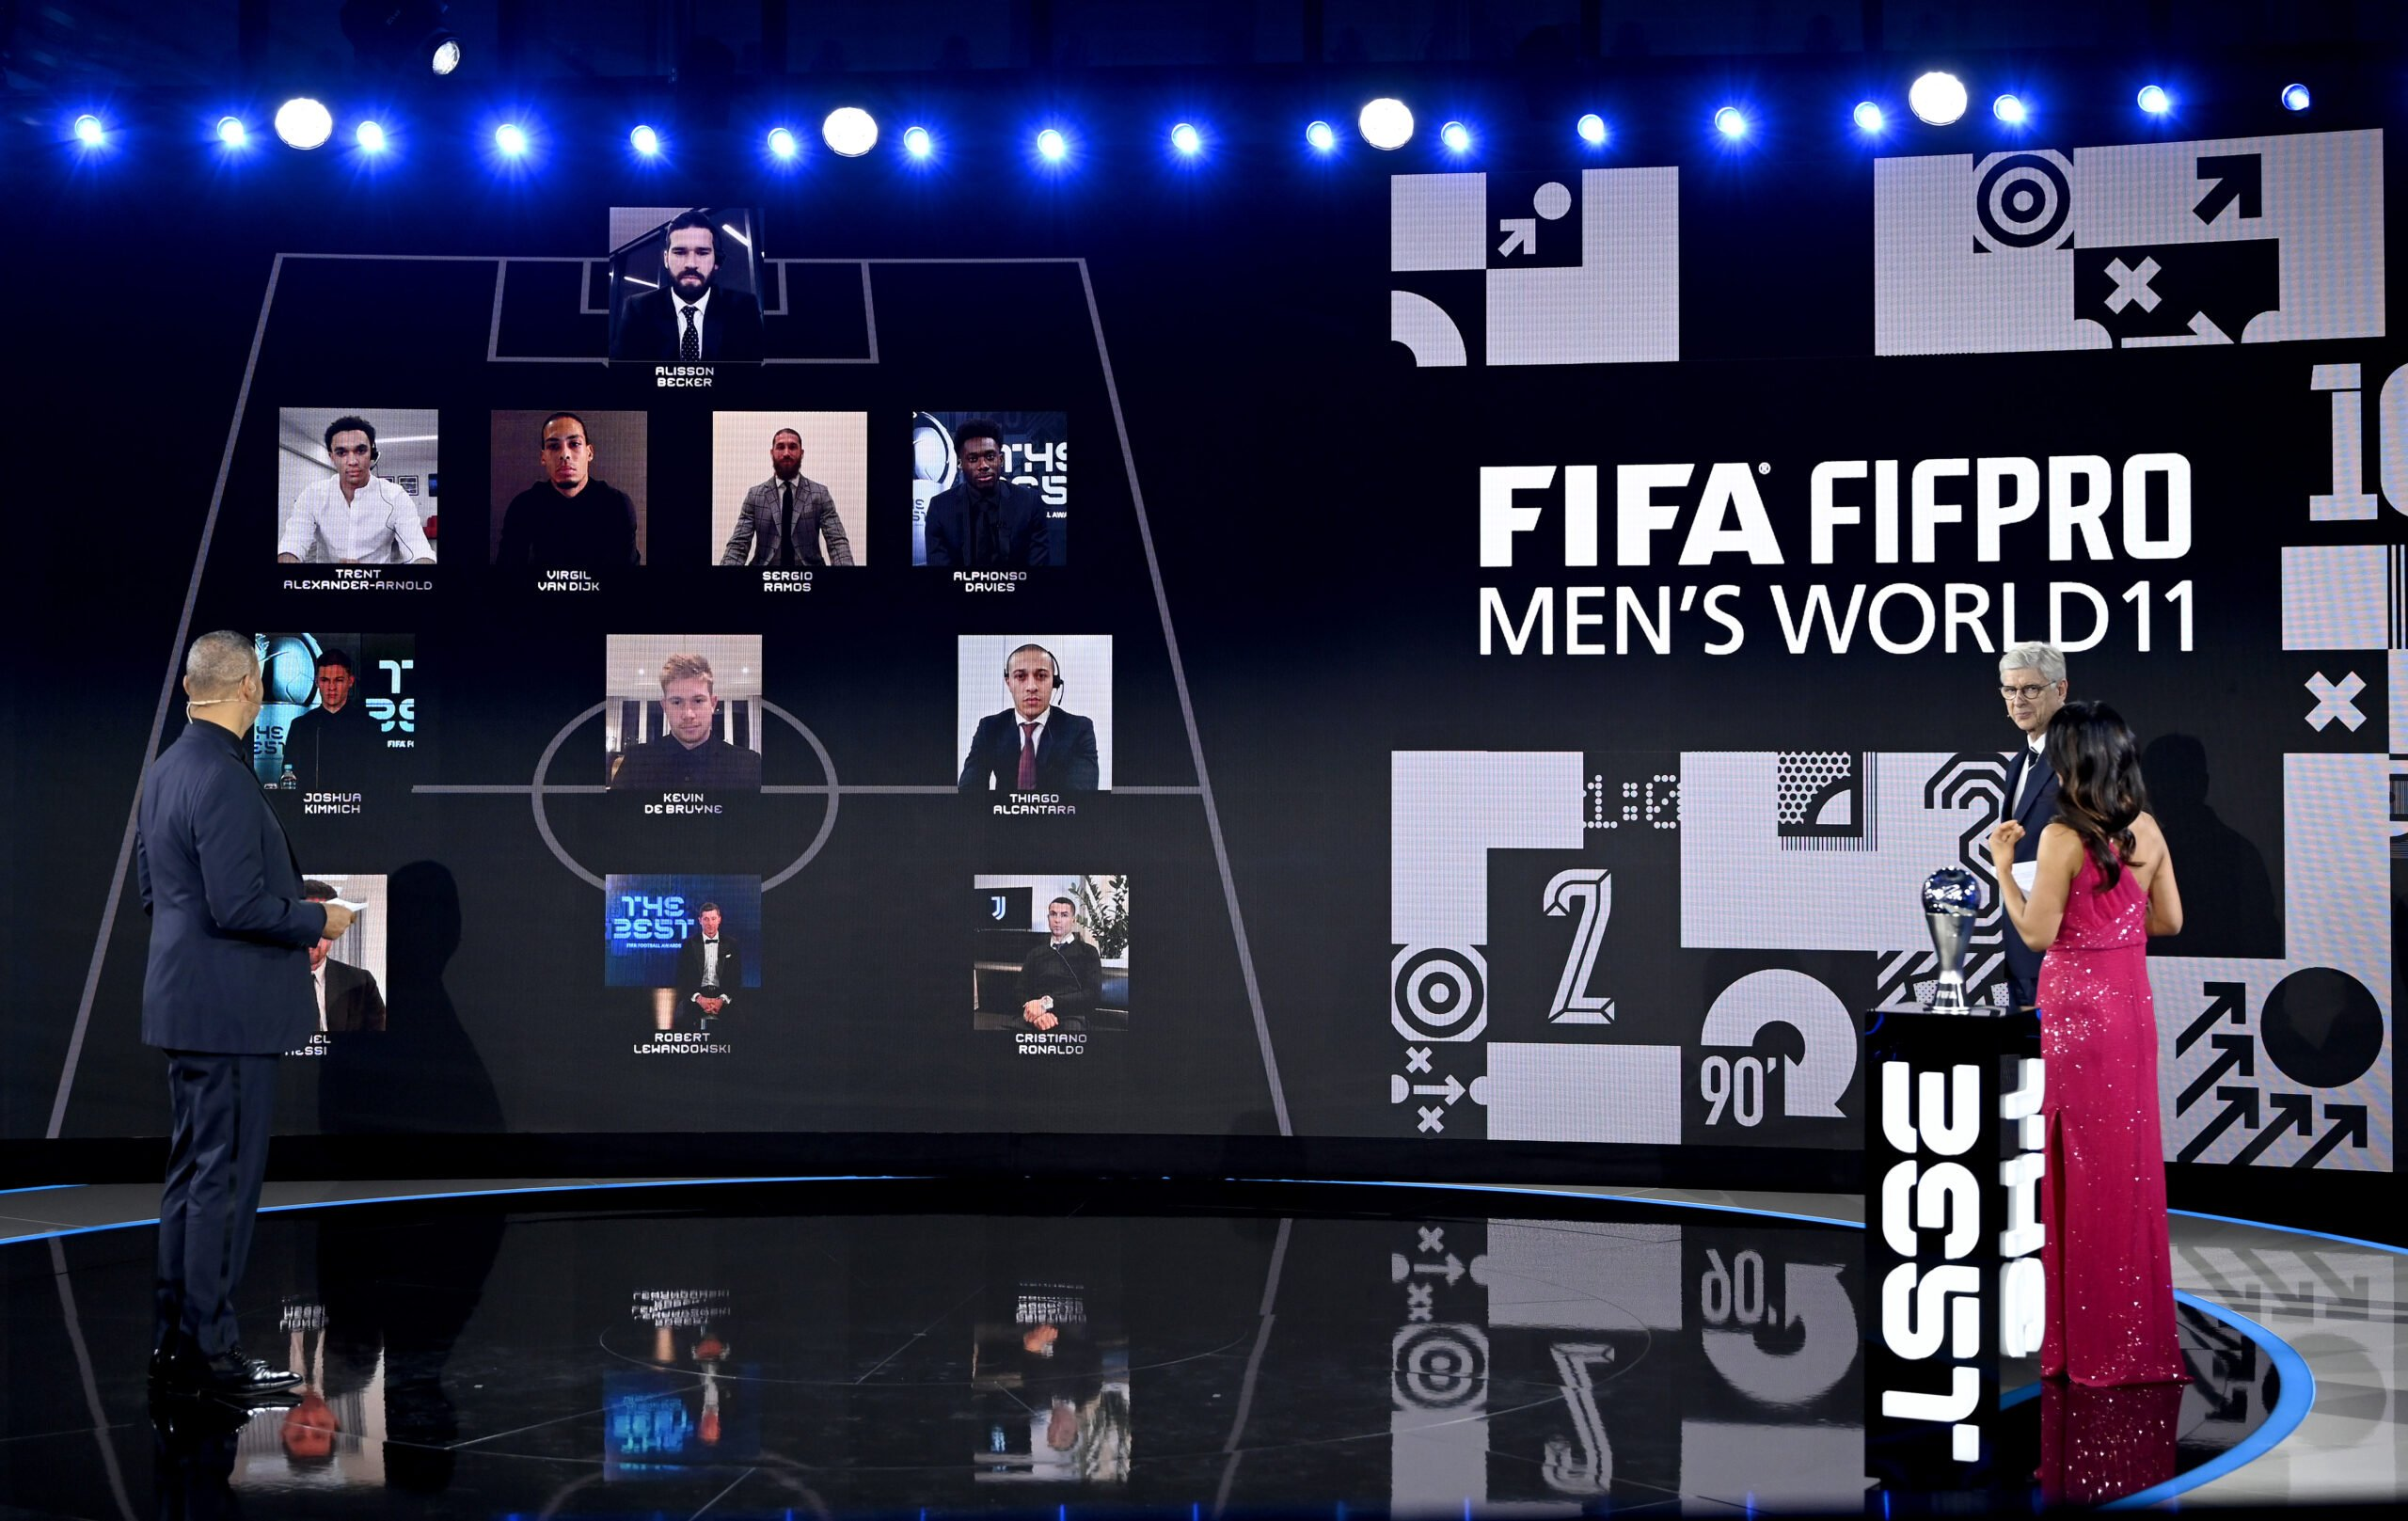 FIFPro World 11